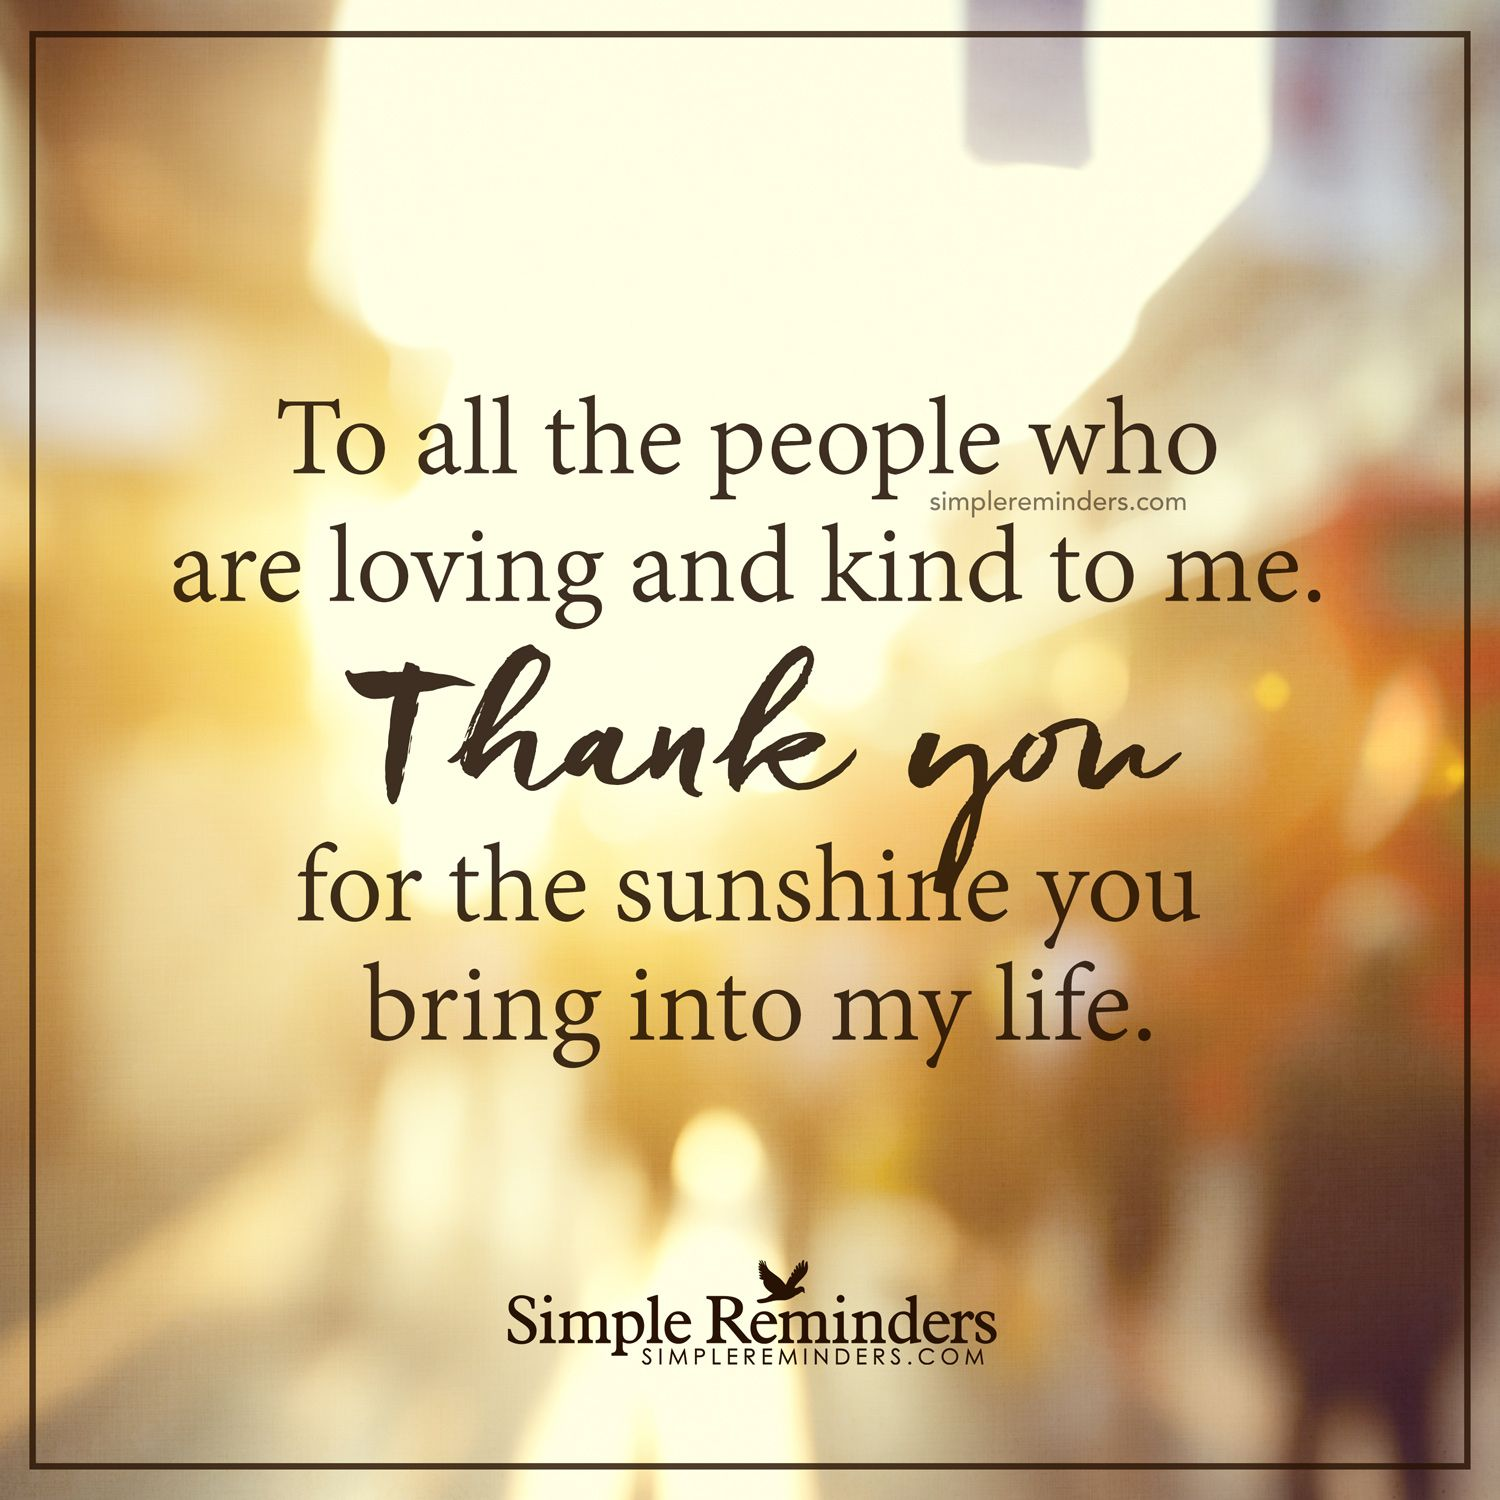 Thank you for all the kind people To all the people who ...